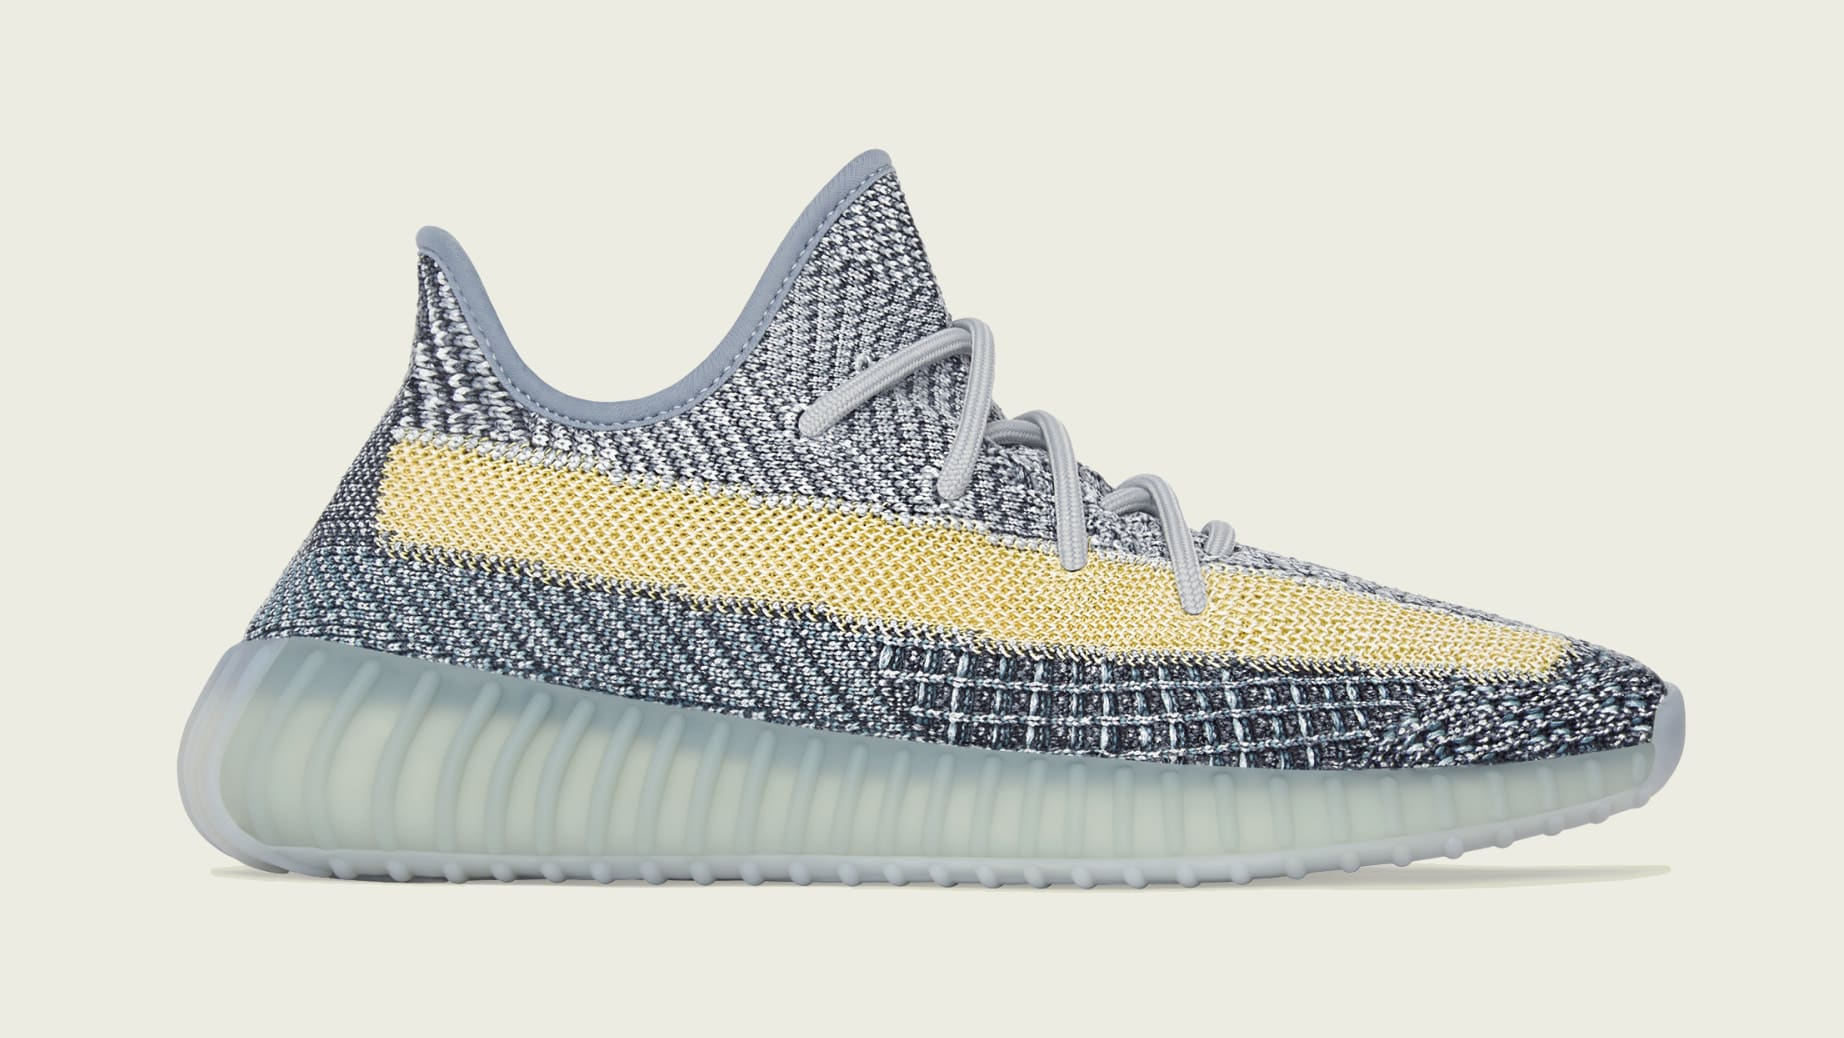 Adidas Yeezy Boost 350 V2 'Ash Blue' GY7657 Lateral